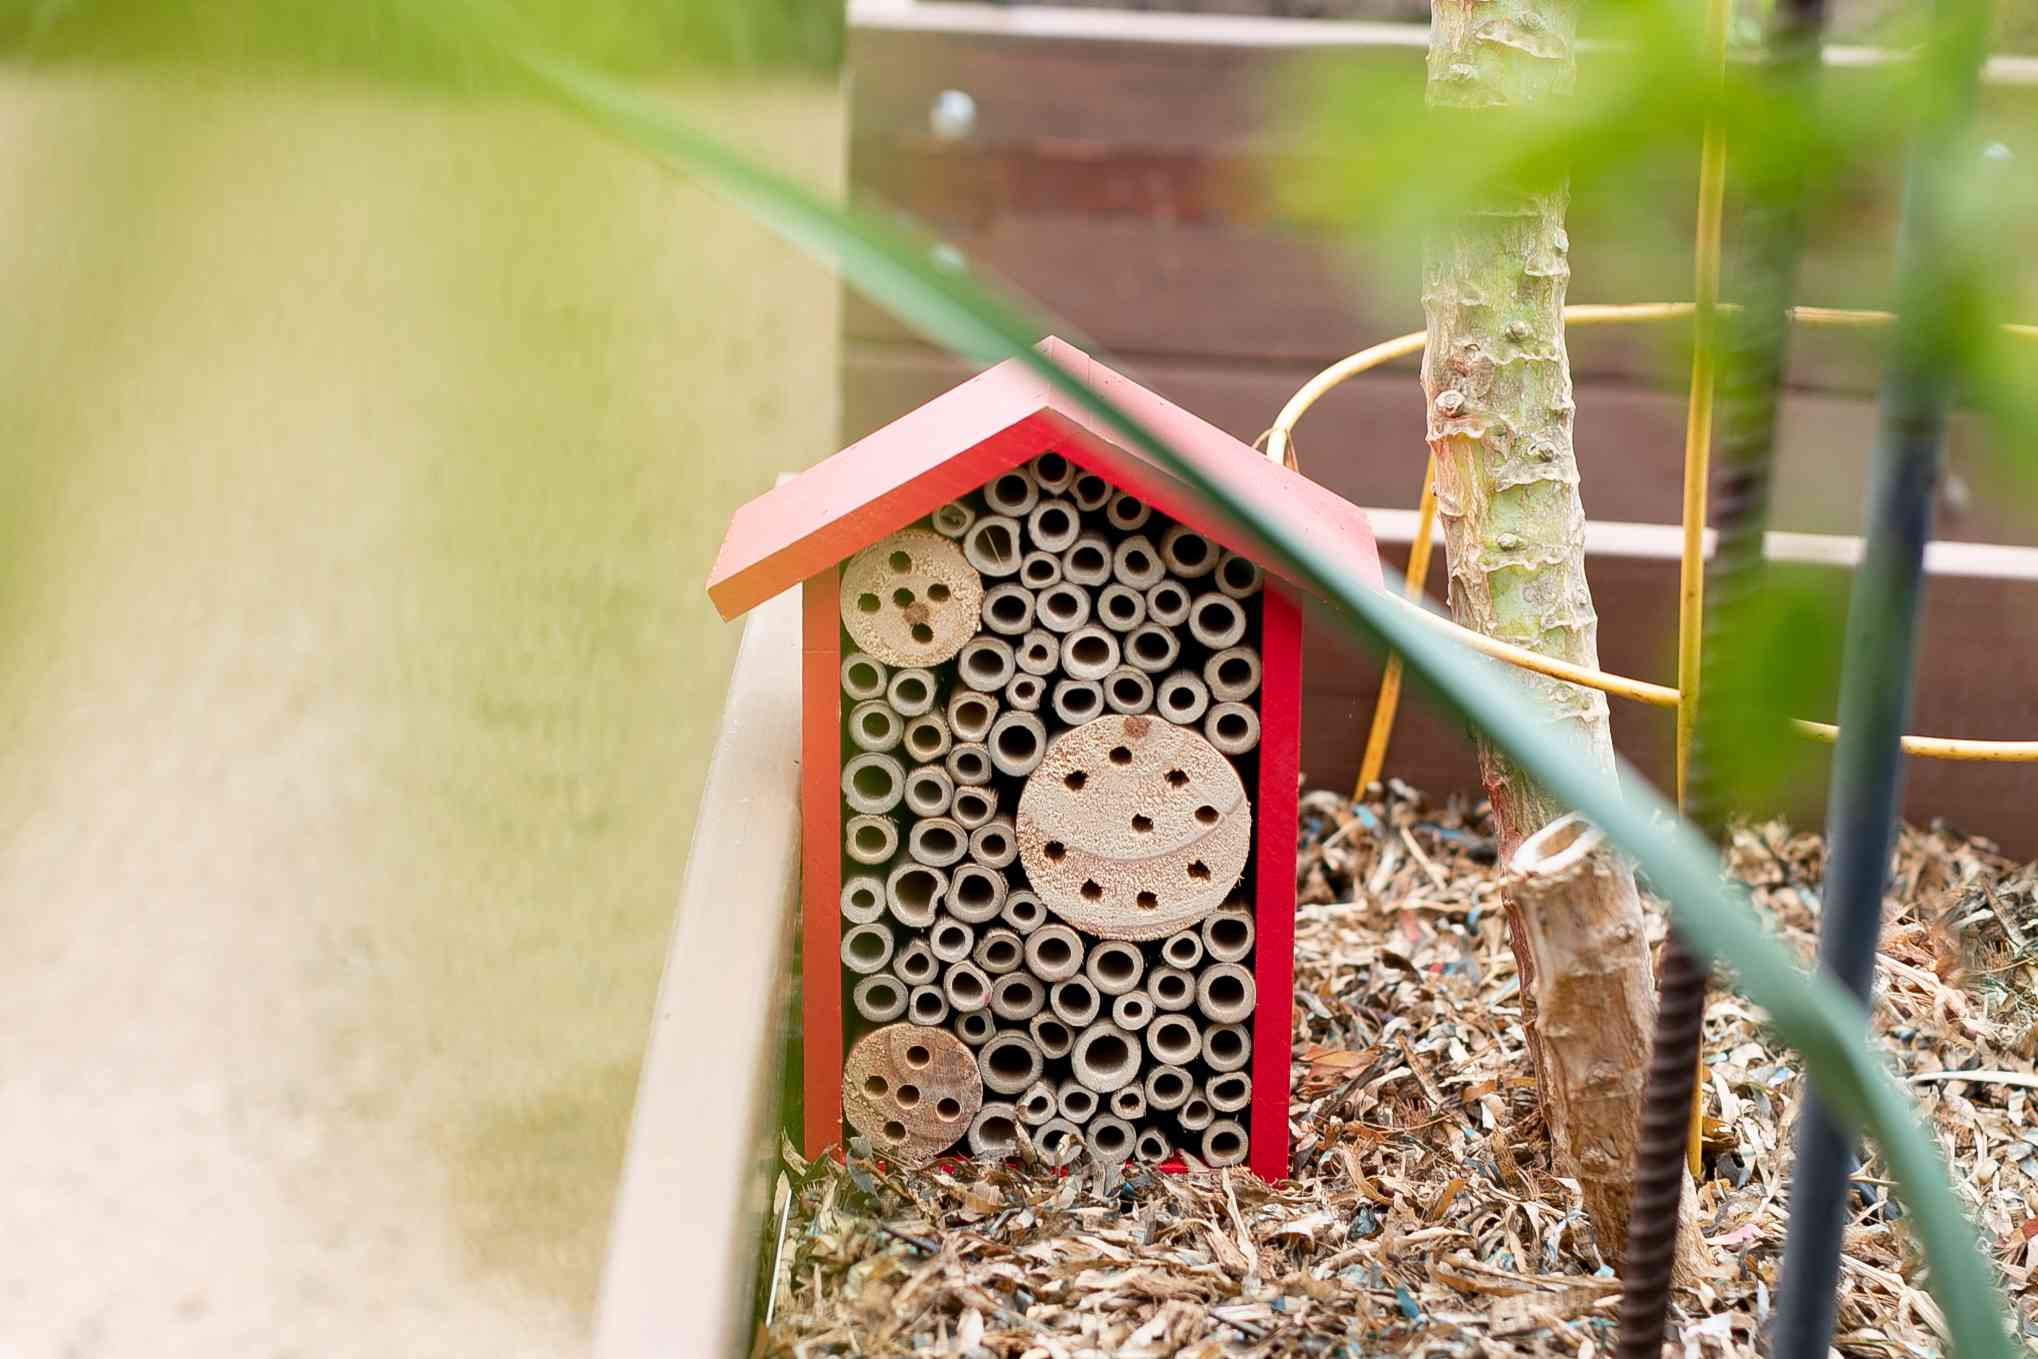 Red ladybug house to encourage good insects in vegetable garden against pests